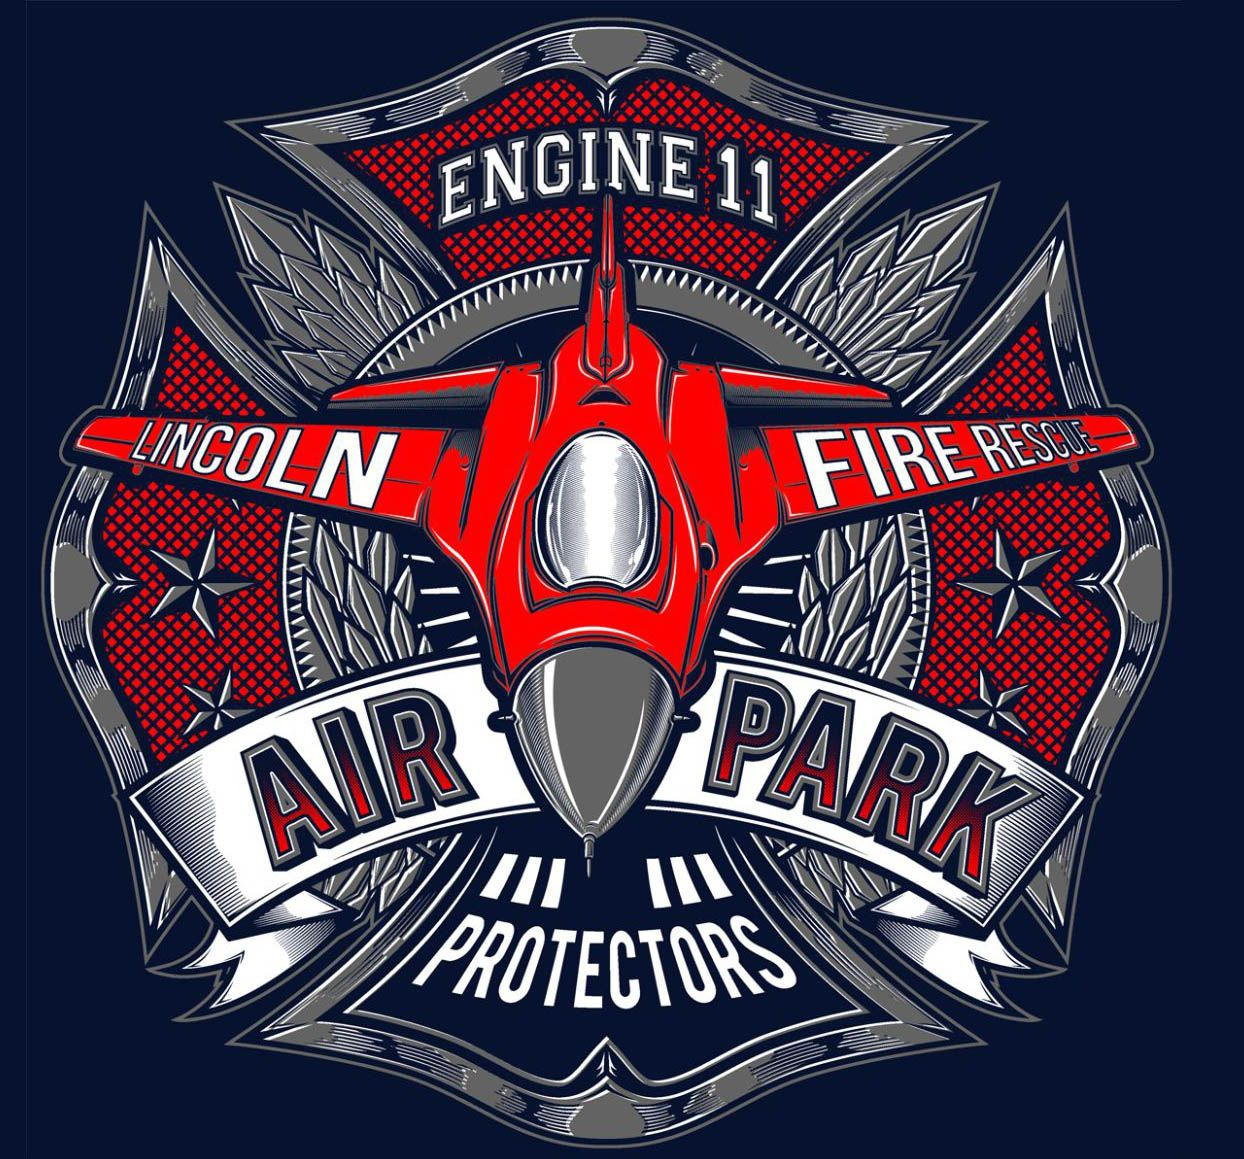 Pin by Jen Nay on Patch Pride, Baby! Firefighter logo